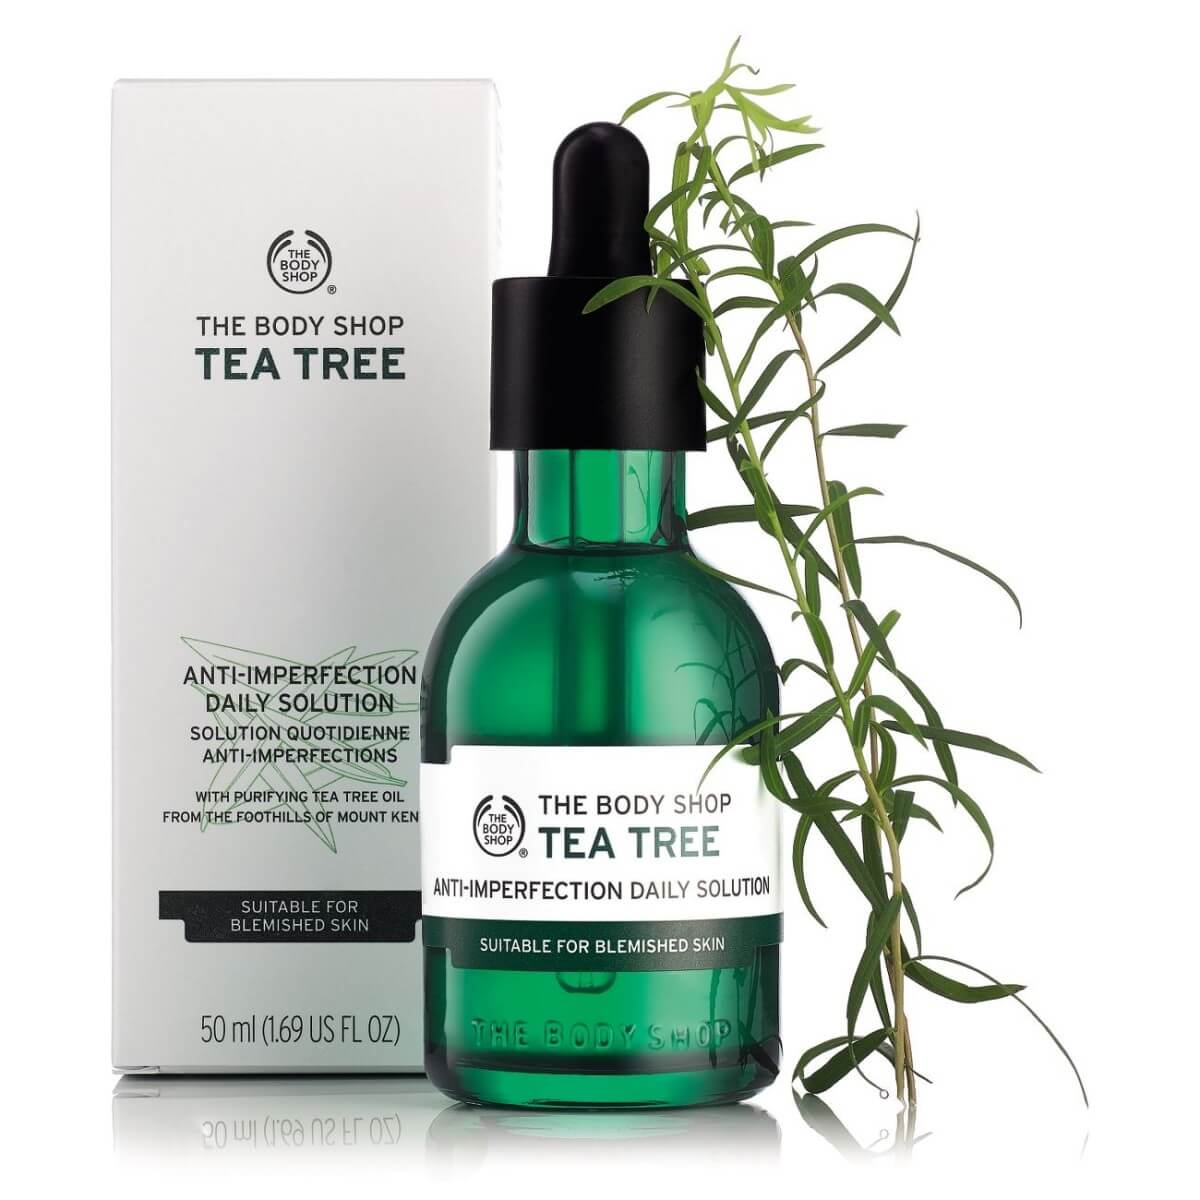 TEA TREE SKIN CLEARING DAILY SOLUTION